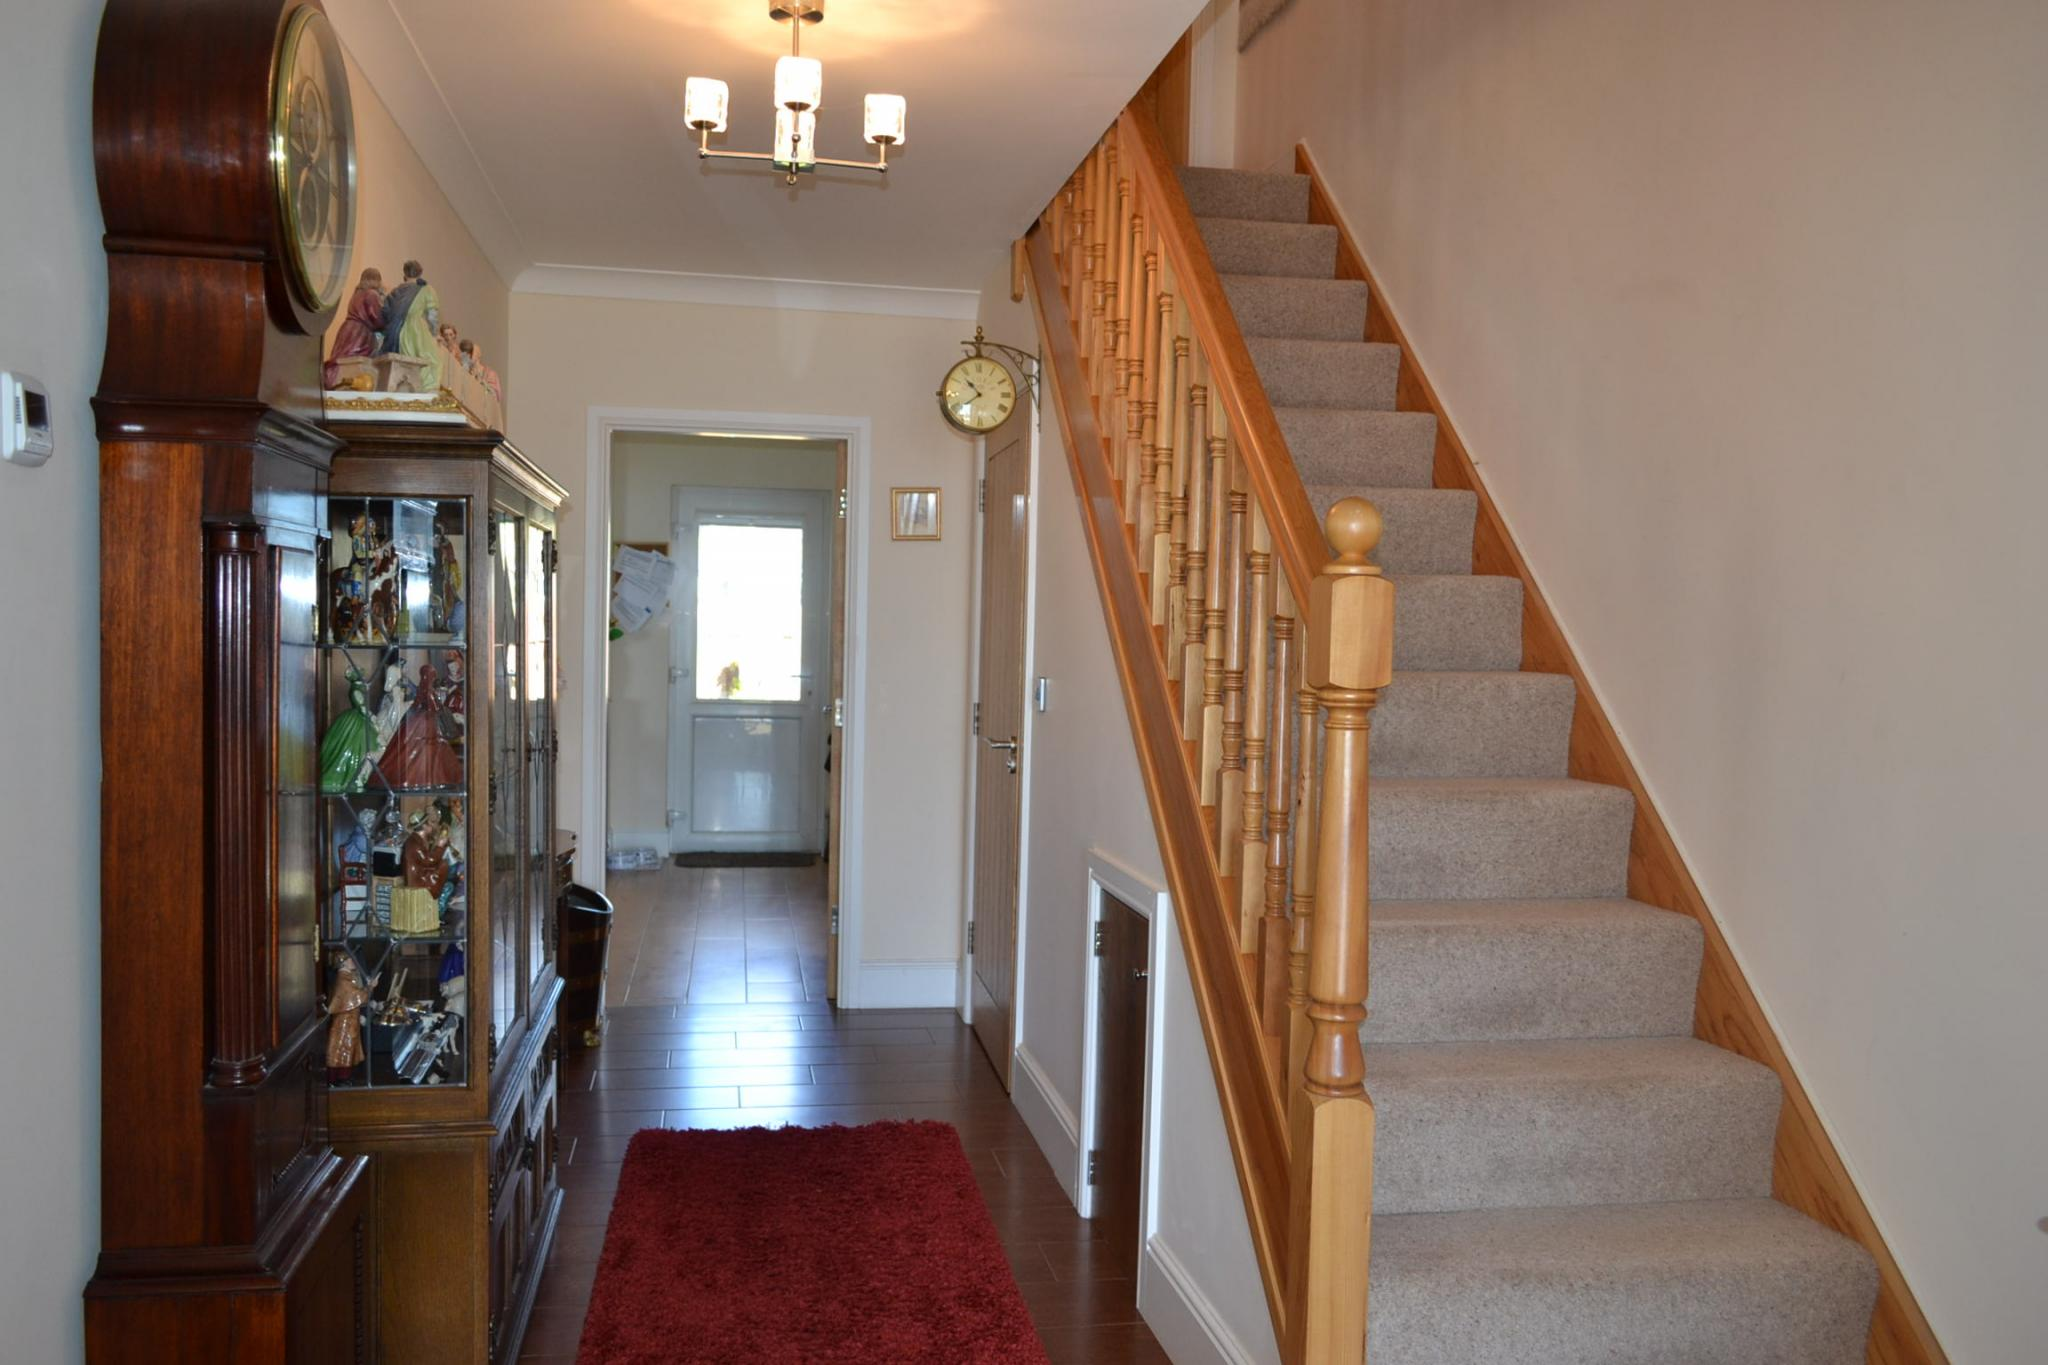 5 bedroom detached house For Sale in Port St Mary - Photograph 9